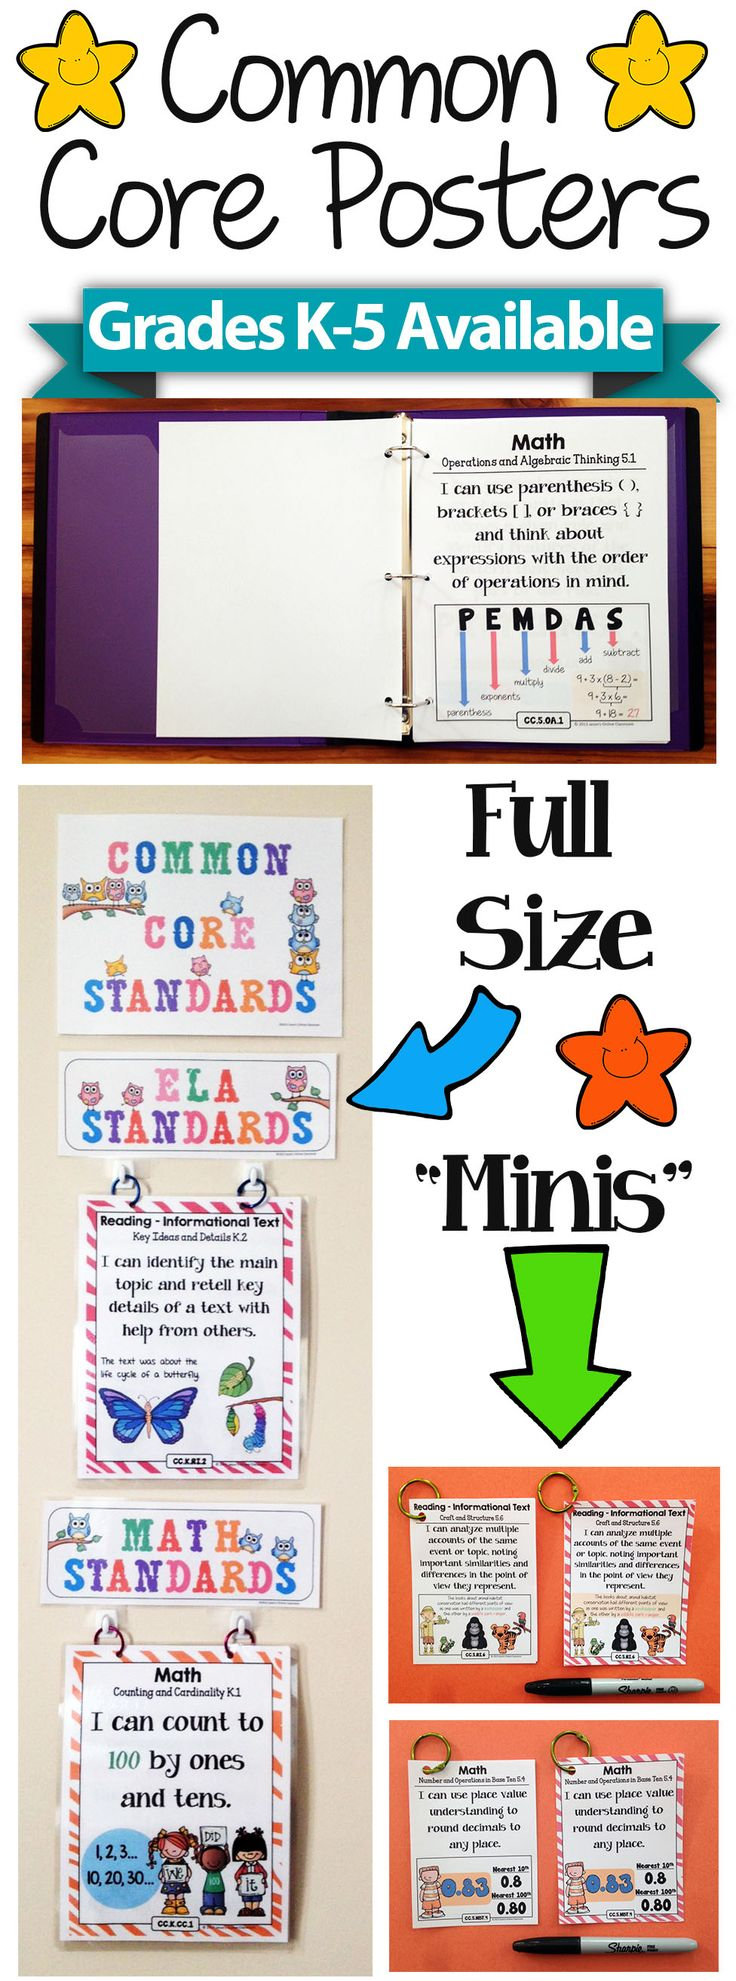 Common Core I Can Statements in FULL Page Format - Grades K-5 Available! Create amazing classroom displays, focus walls, and reference binders! There are also miniature posters included that are the perfect size for interactive notebooks or student reward badges! Stay organized and help the students take charge of their own learning!